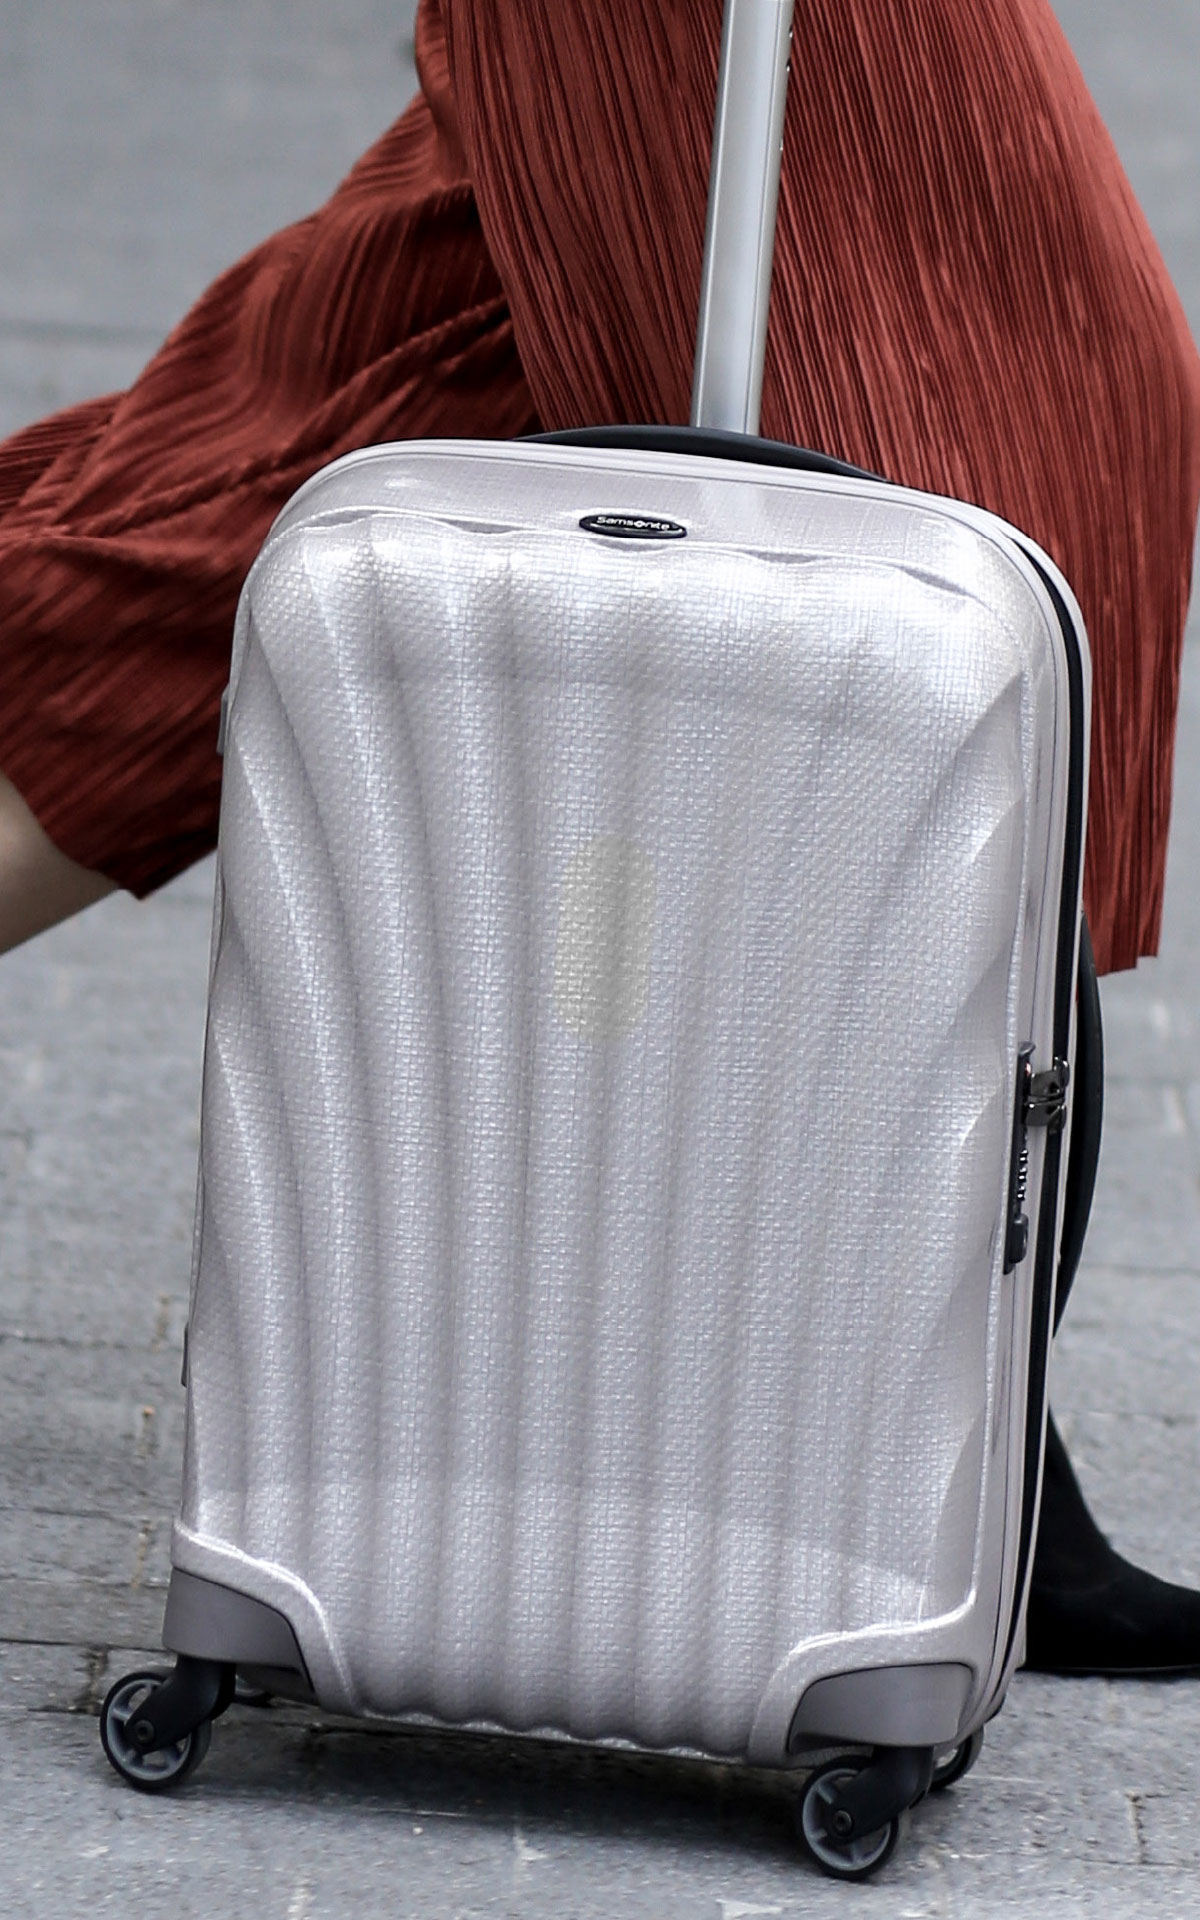 Samsonite travel luggage suitcase hero at Bicester Village